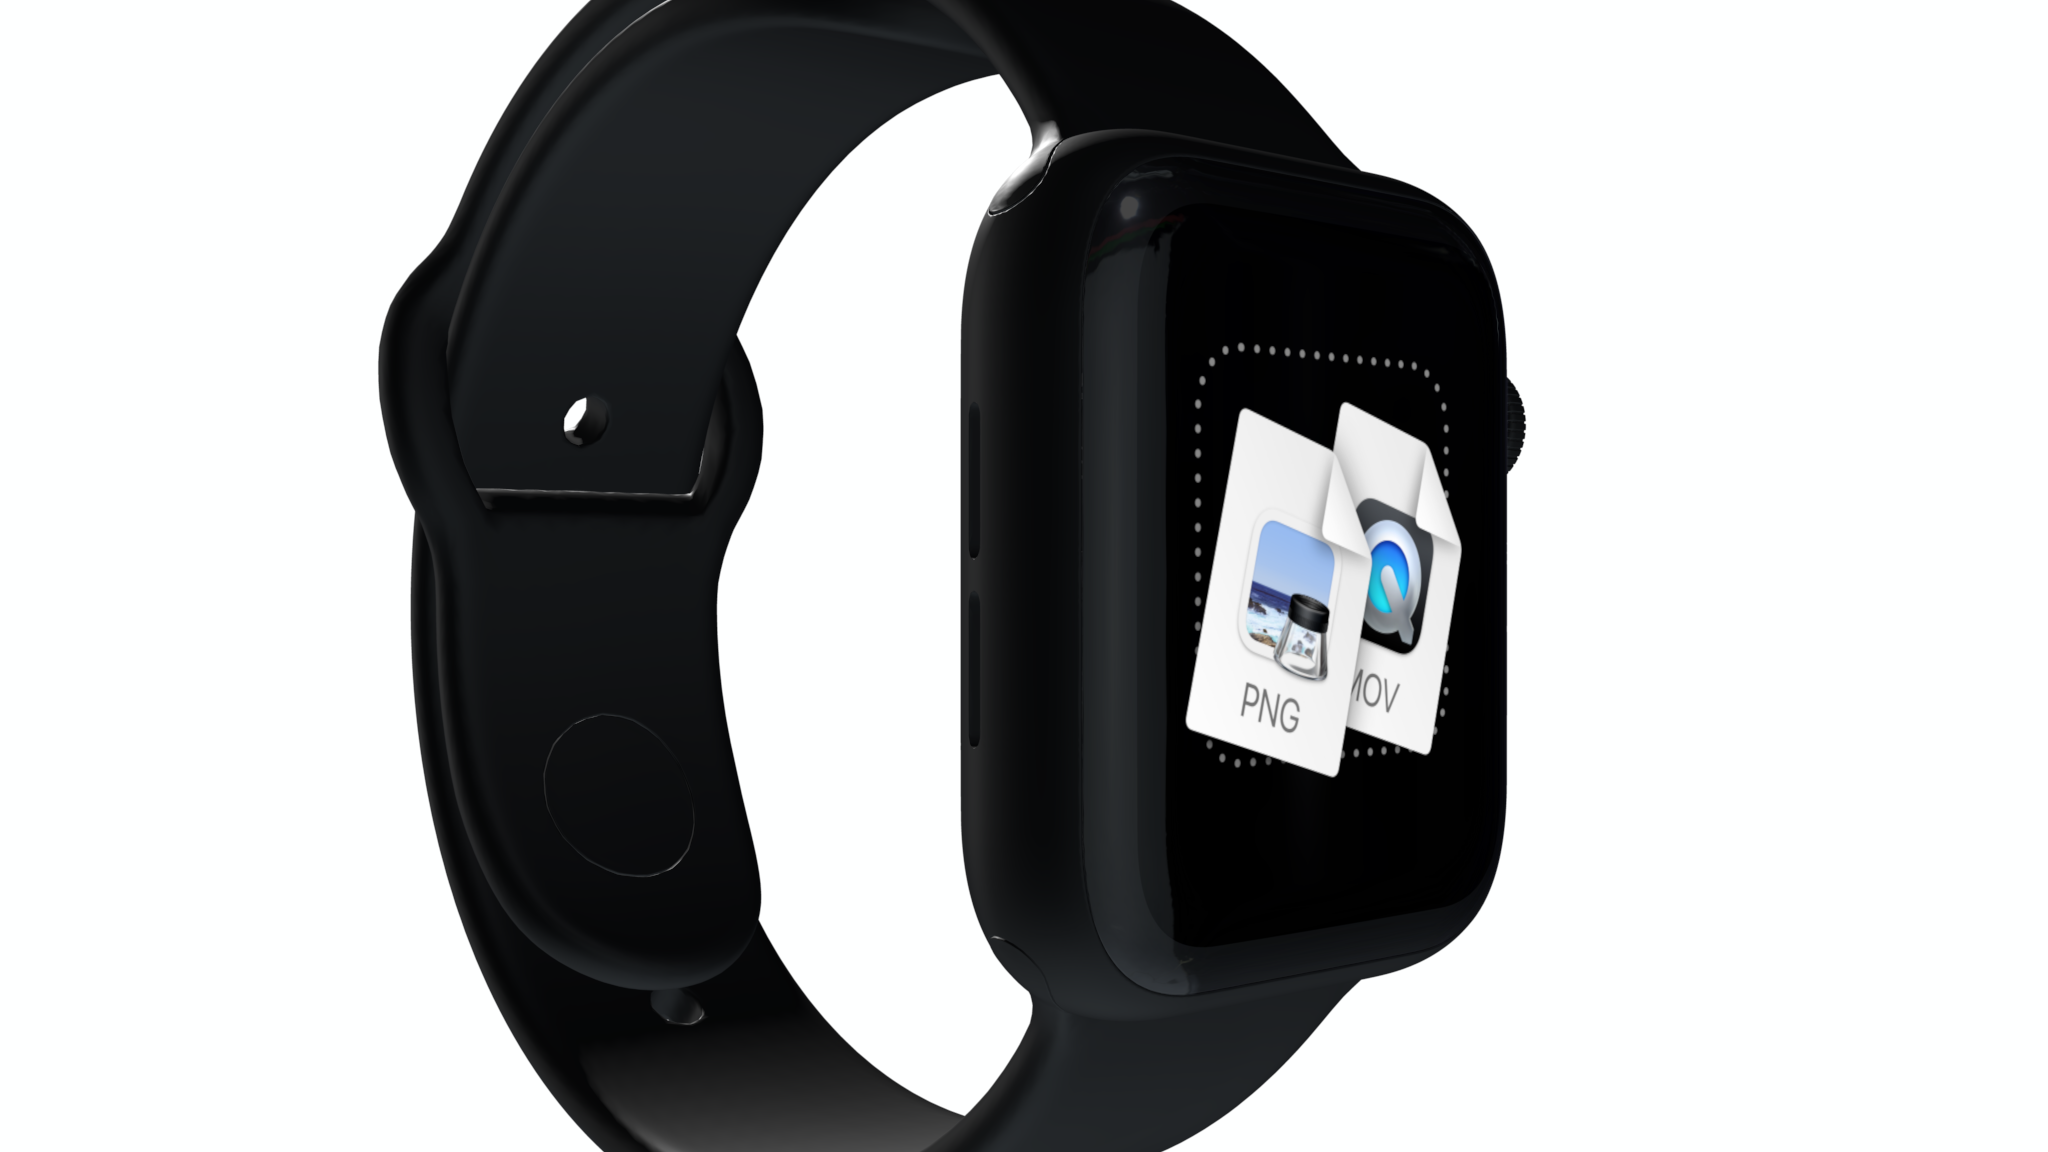 Apple Watch mockup rotated one third